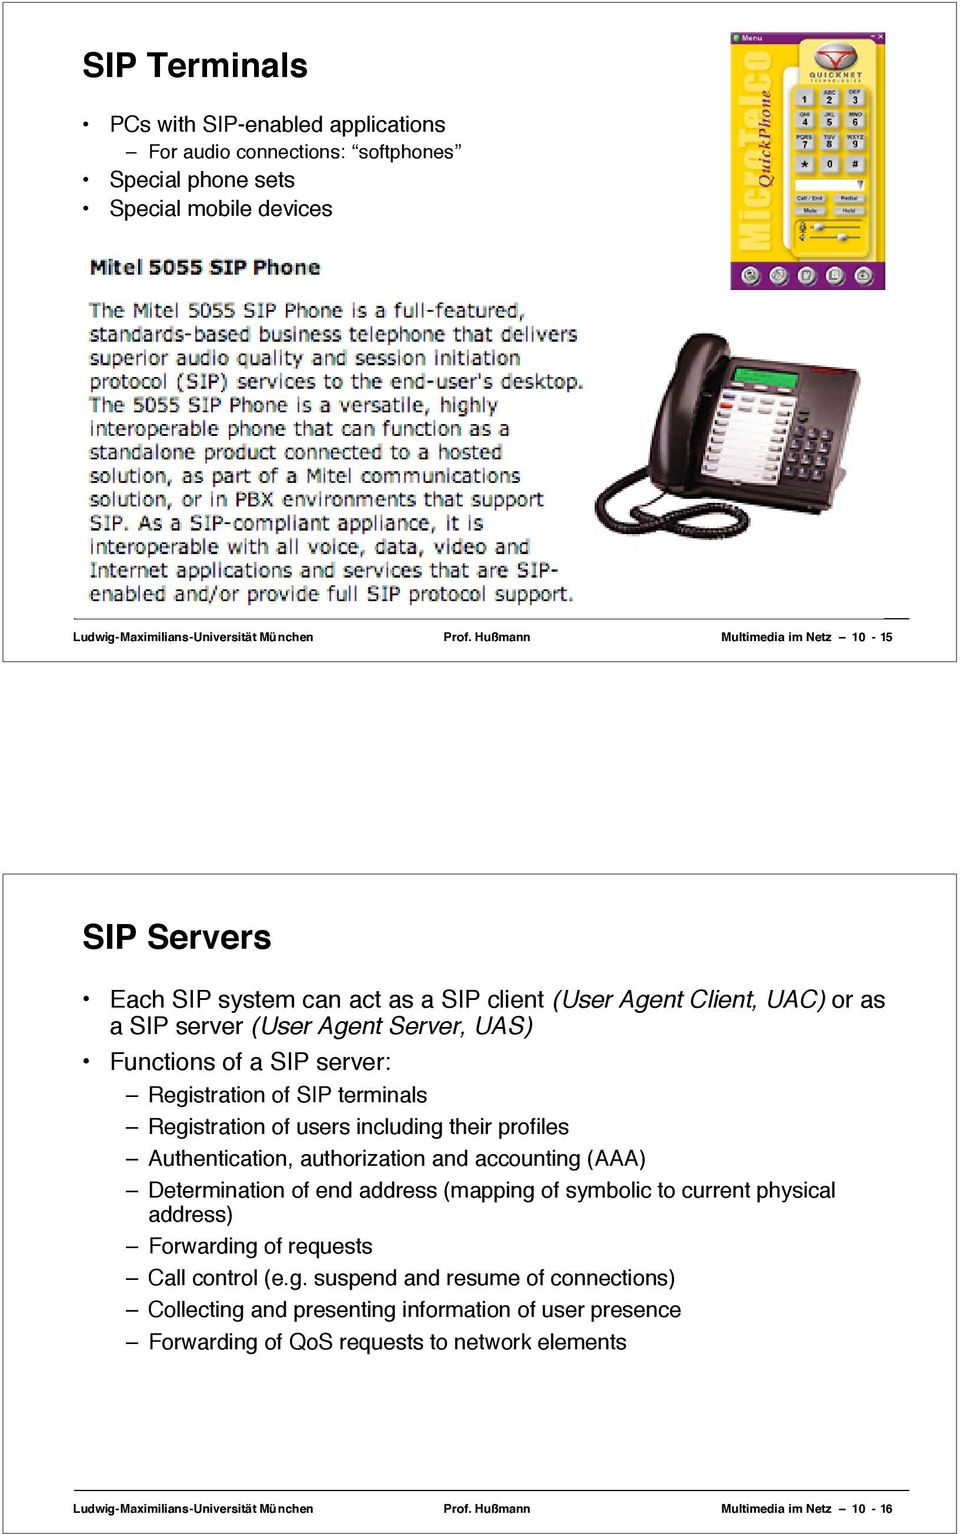 SIP terminals Registration of users including their profiles Authentication, authorization and accounting (AAA) Determination of end address (mapping of symbolic to current physical address)